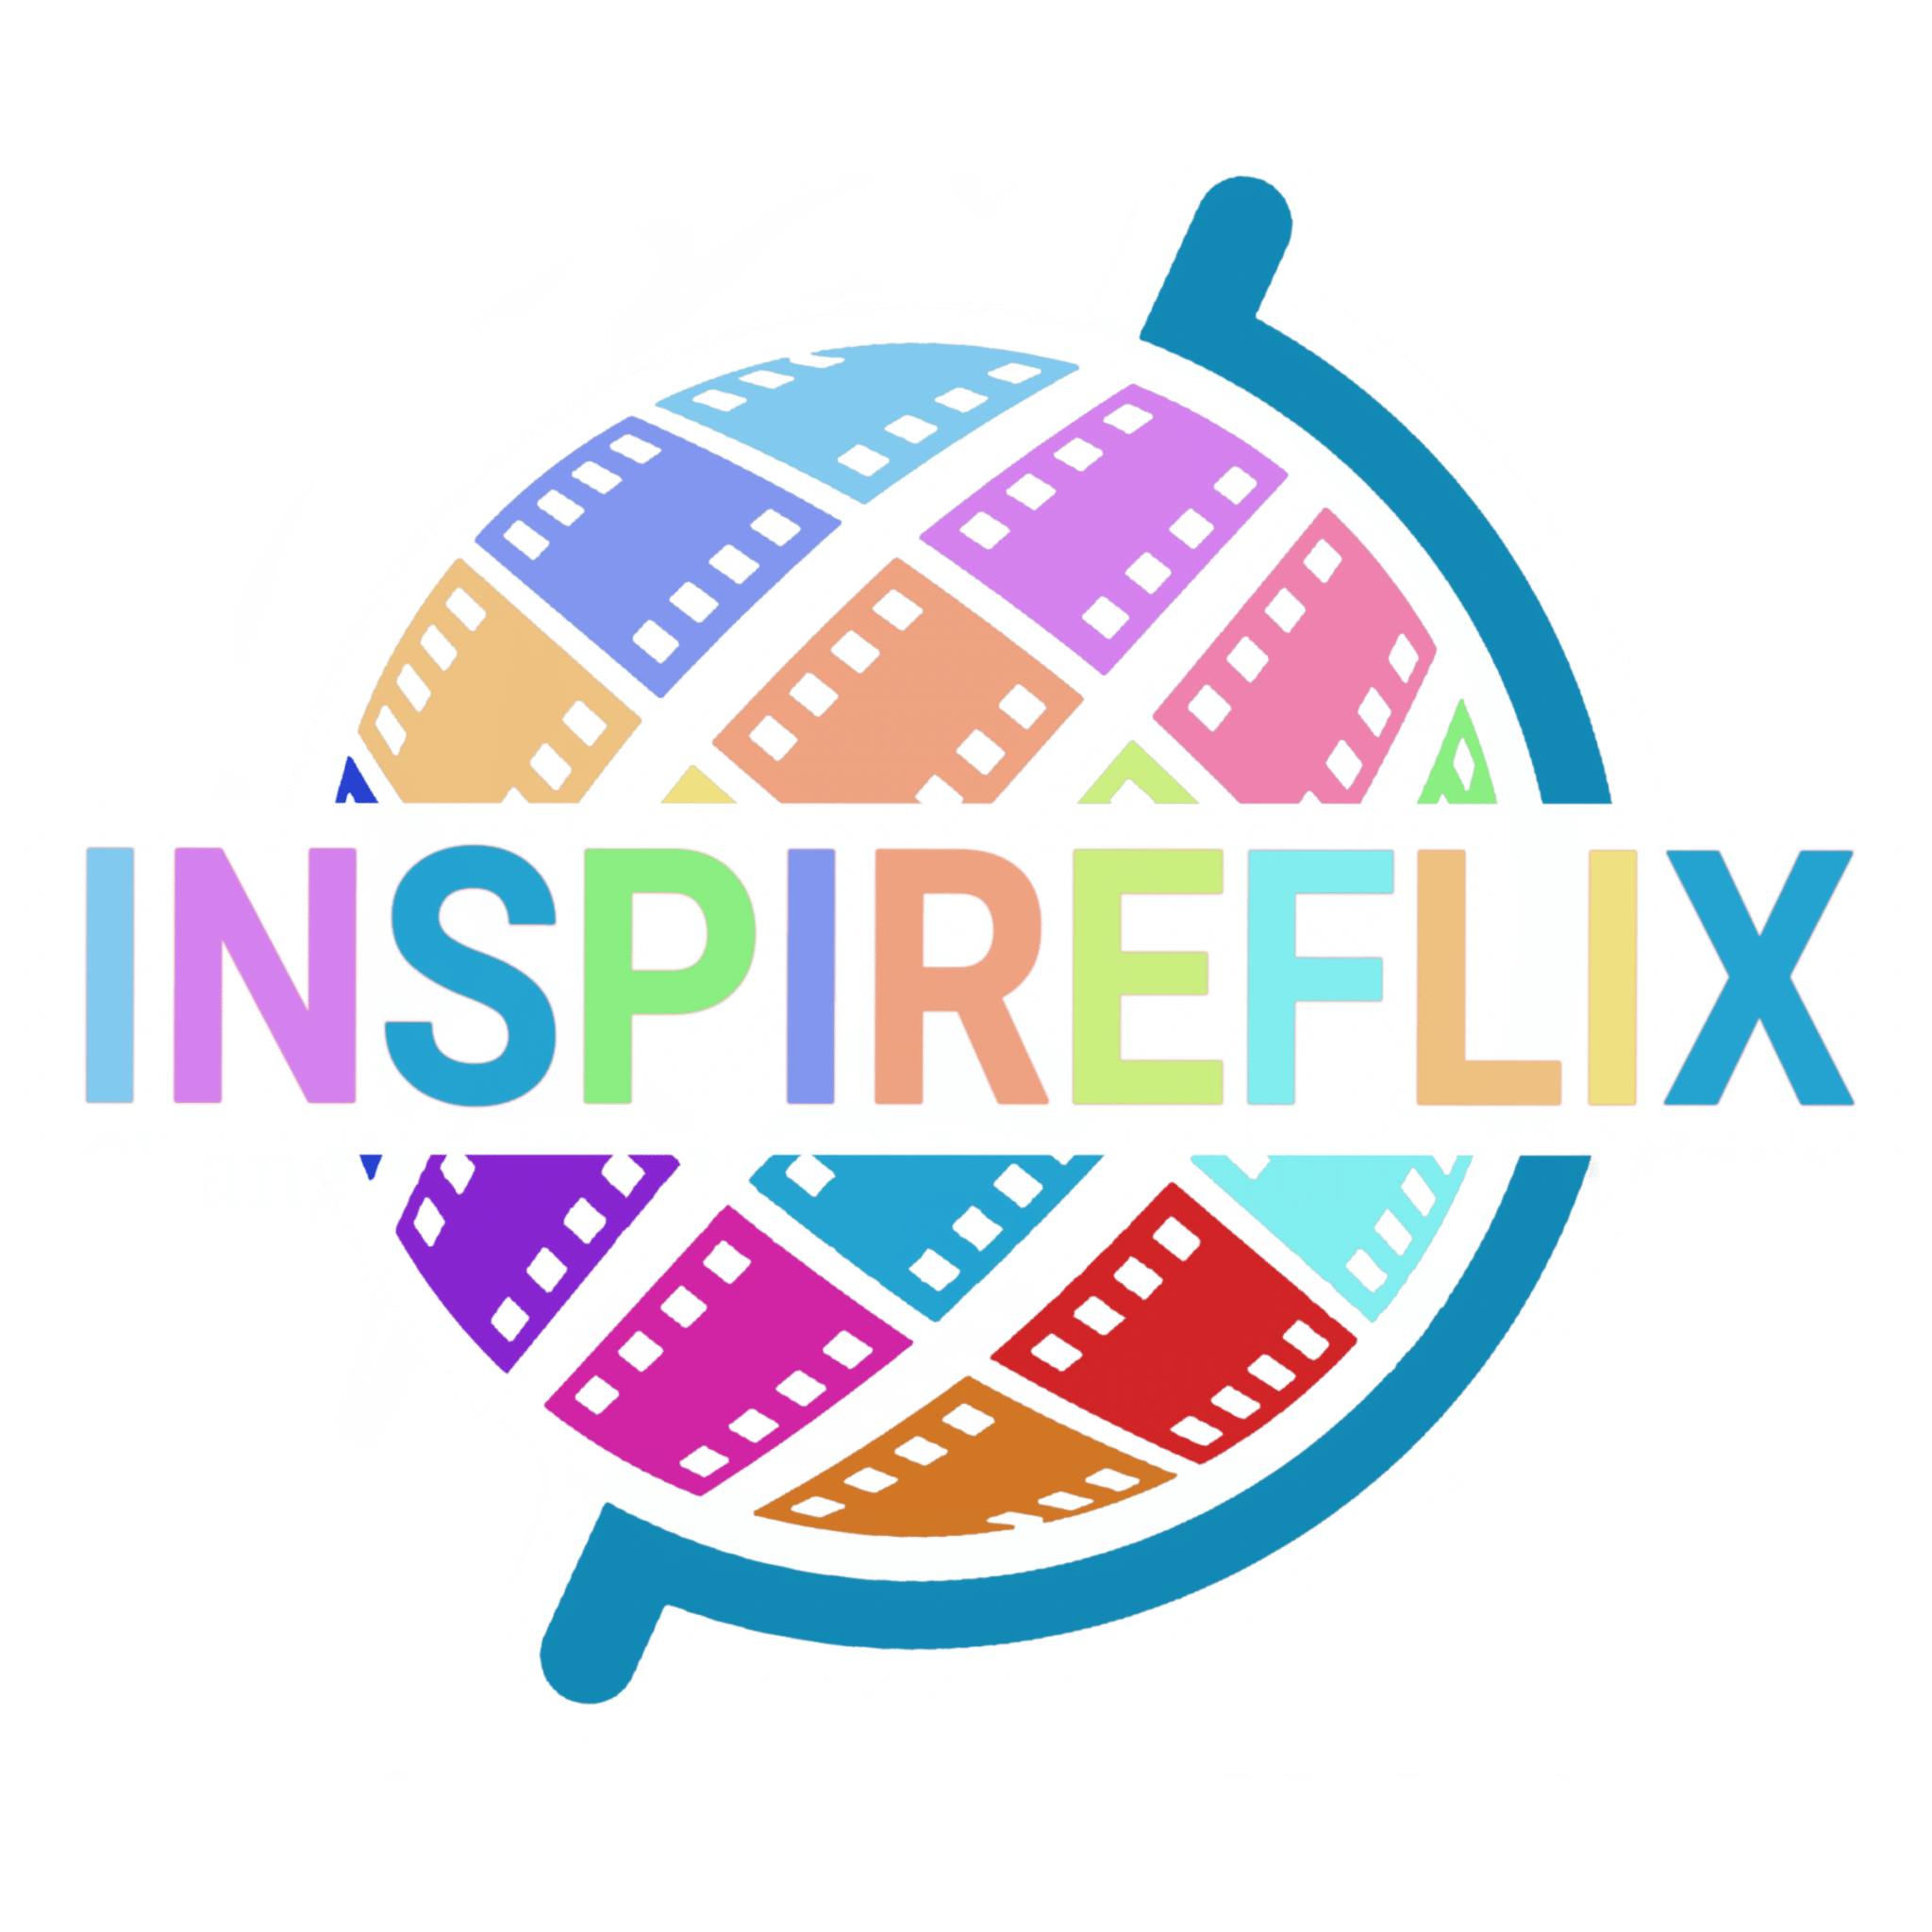 INSPIREFLIX – Changing the world, one story at a time.